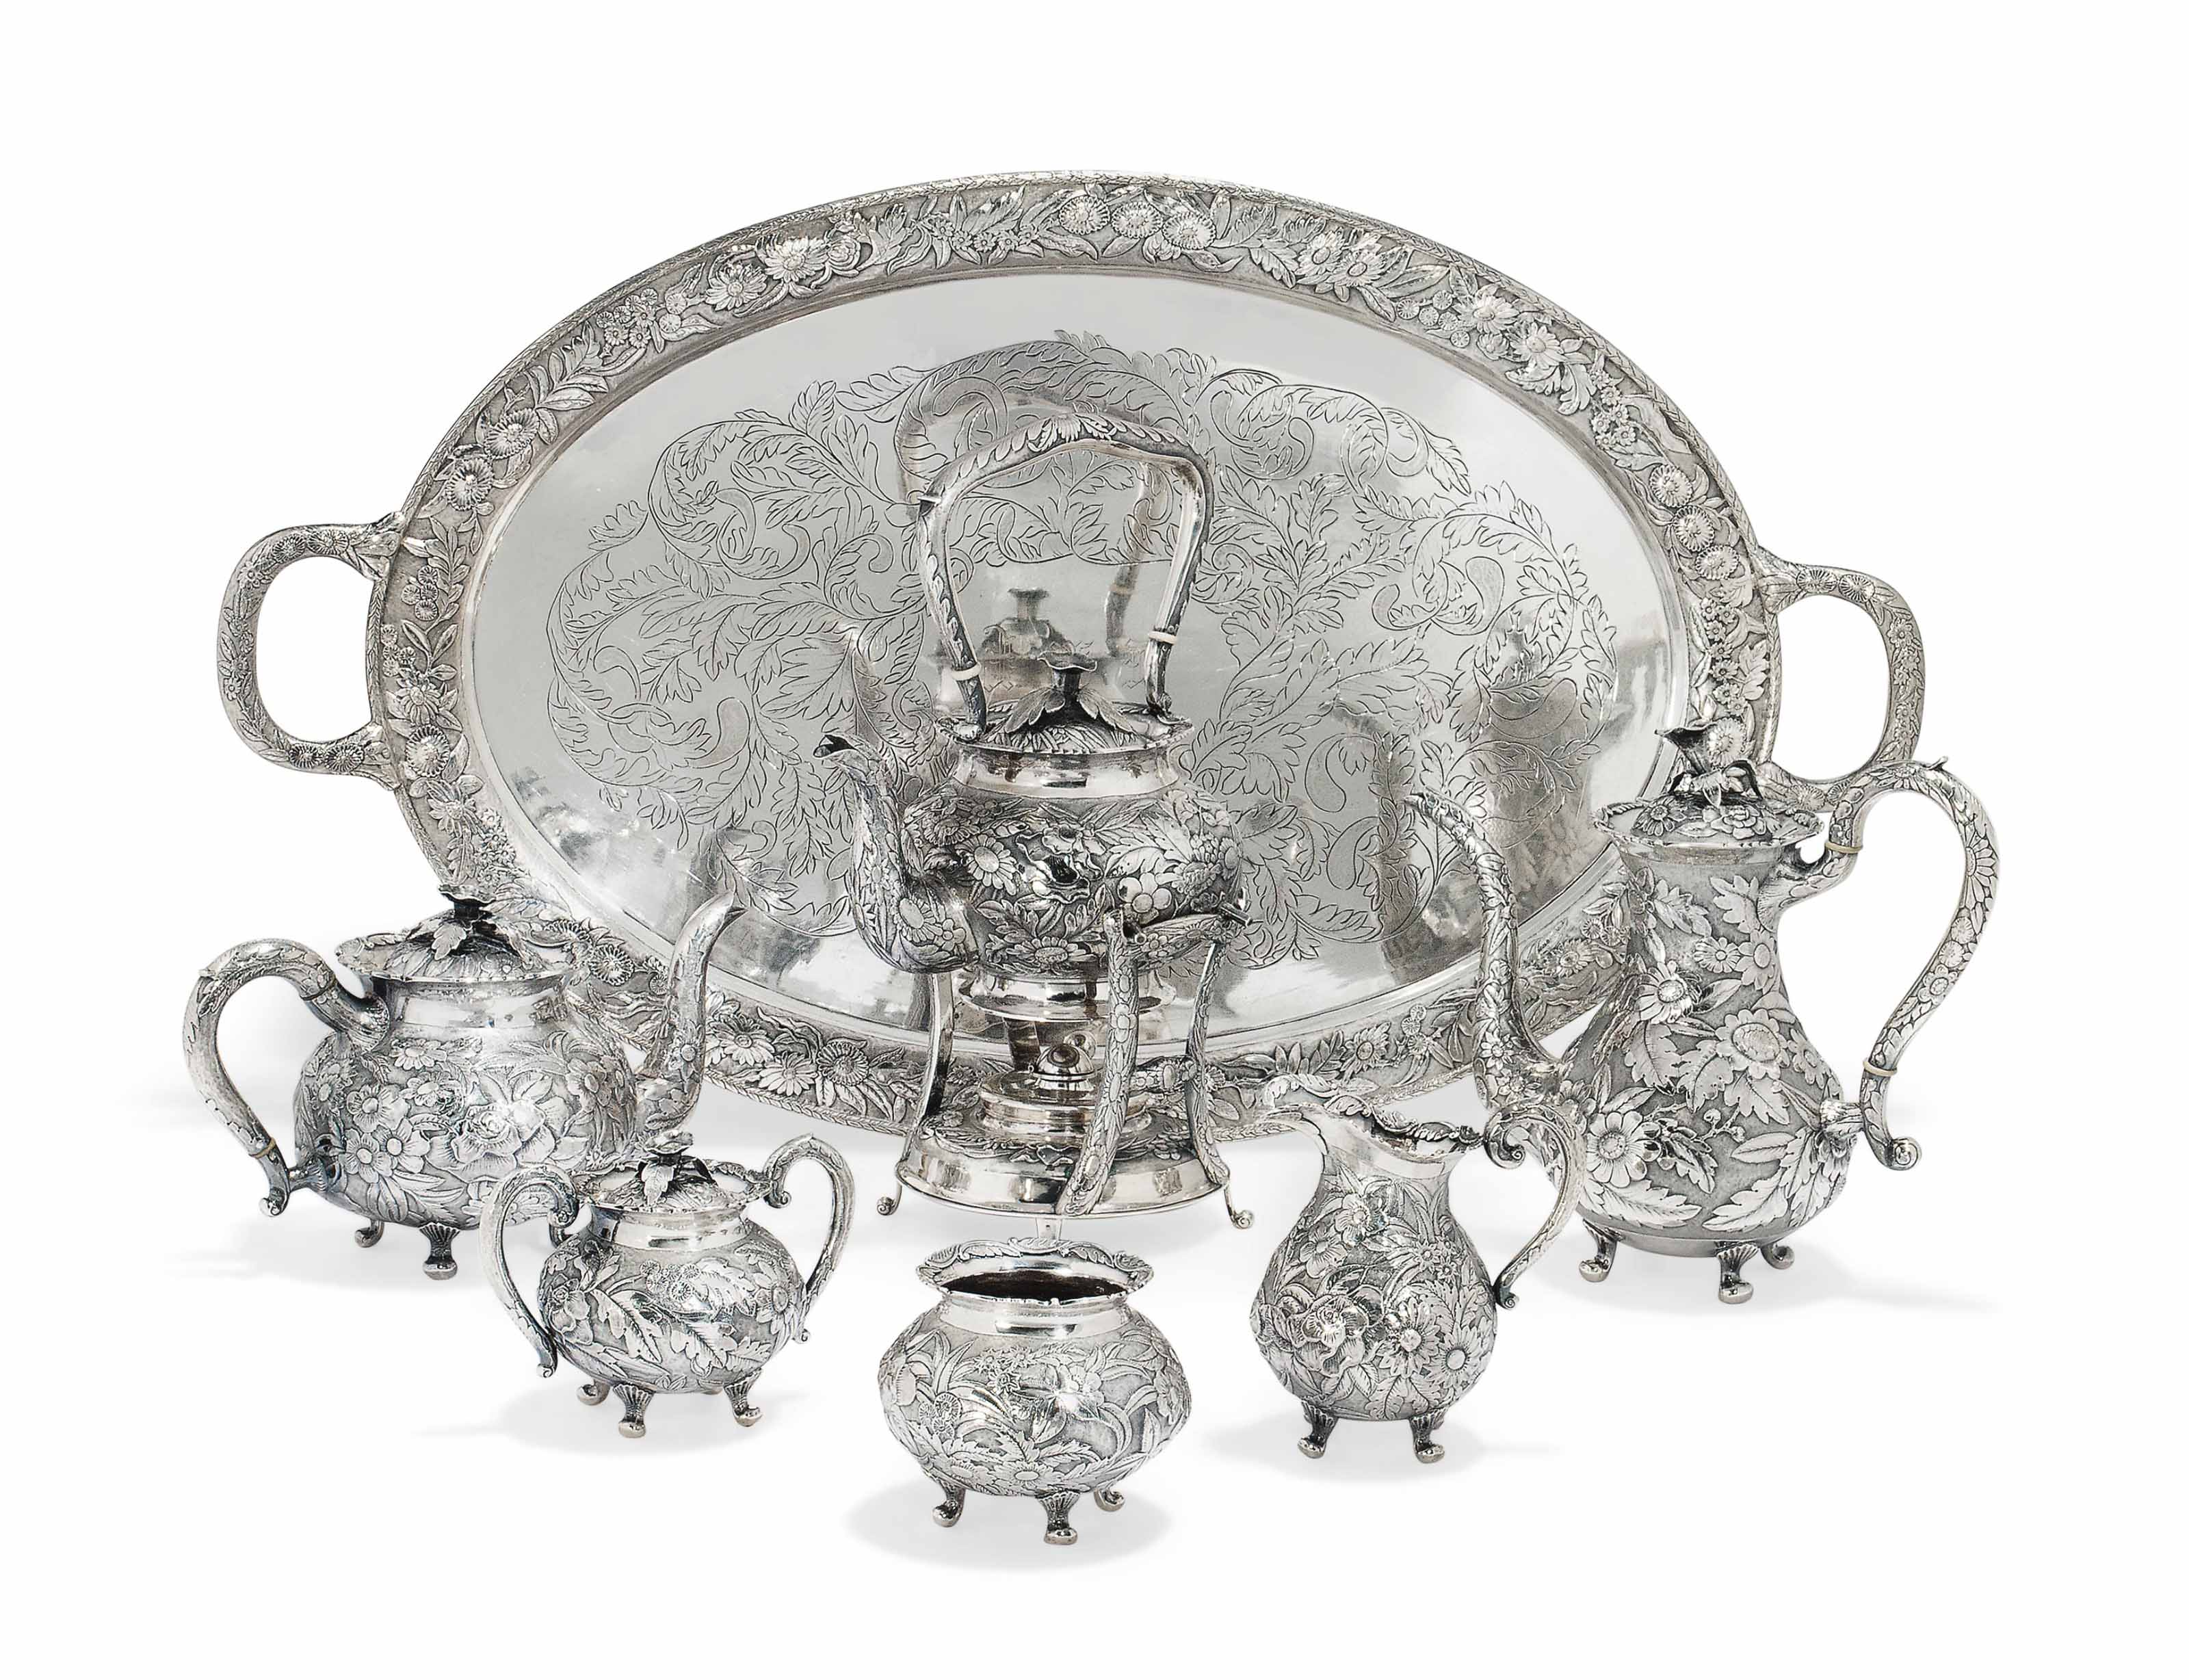 A CHINESE SILVER SIX-PIECE TEA